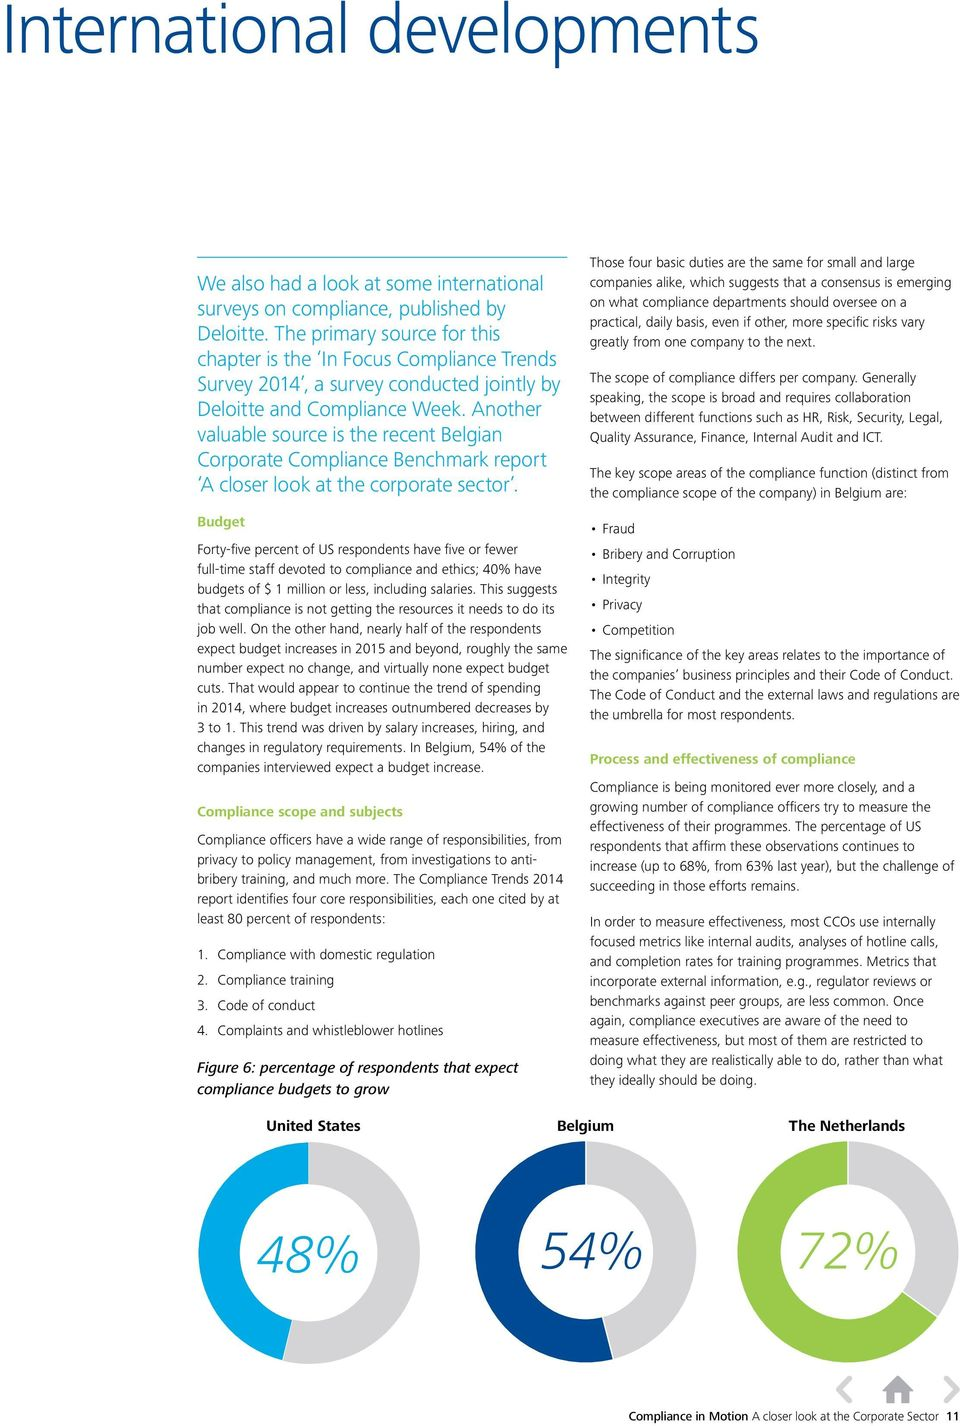 Another valuable source is the recent Belgian Corporate Compliance Benchmark report A closer look at the corporate sector.